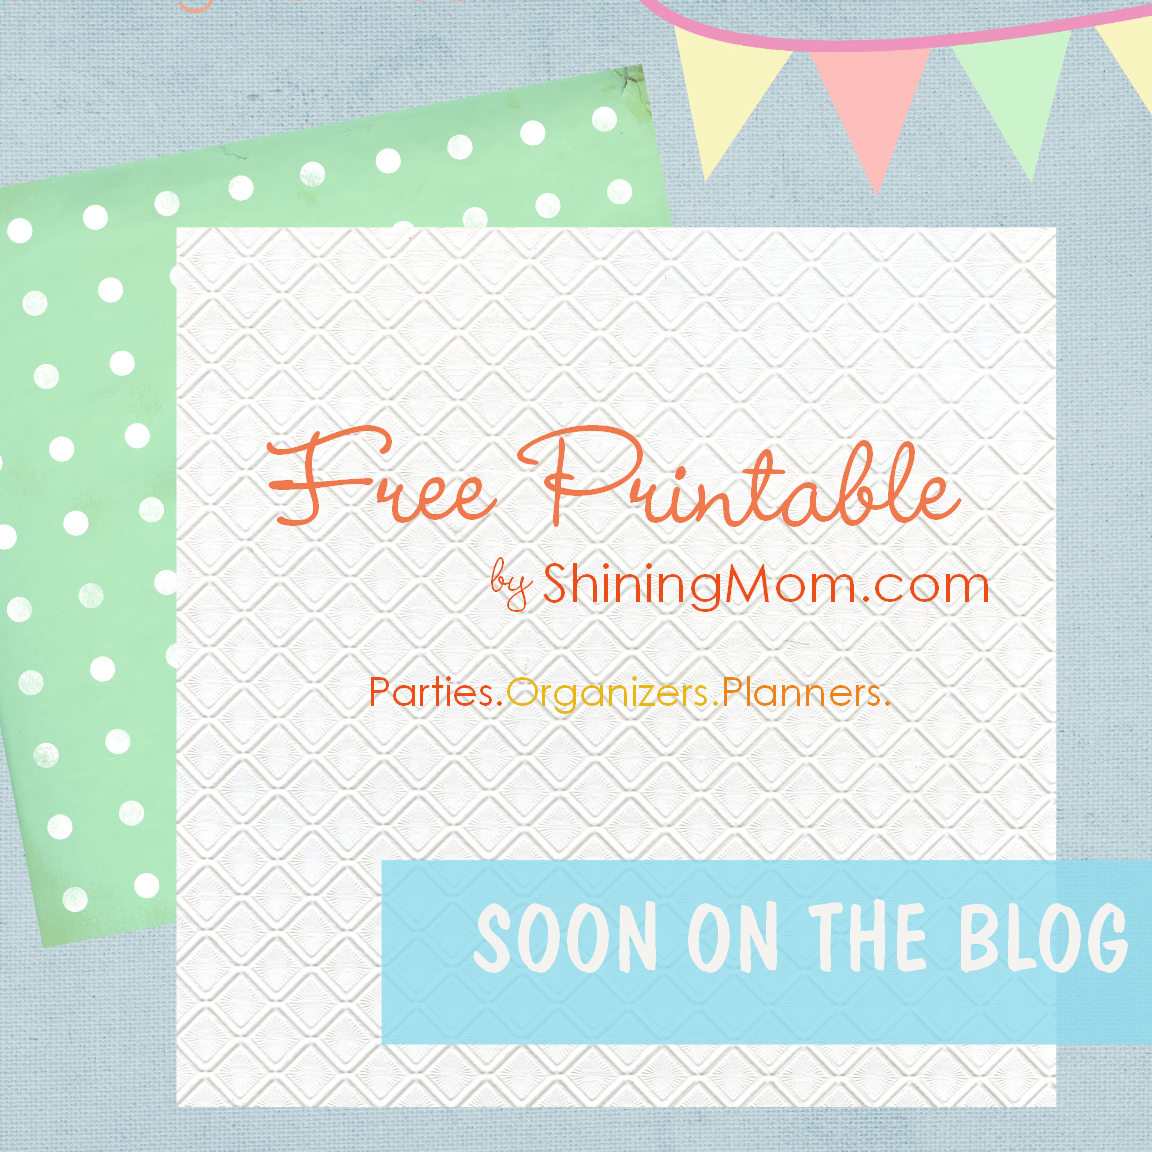 Coming Soon:Free Printable Designs by ShiningMom.com